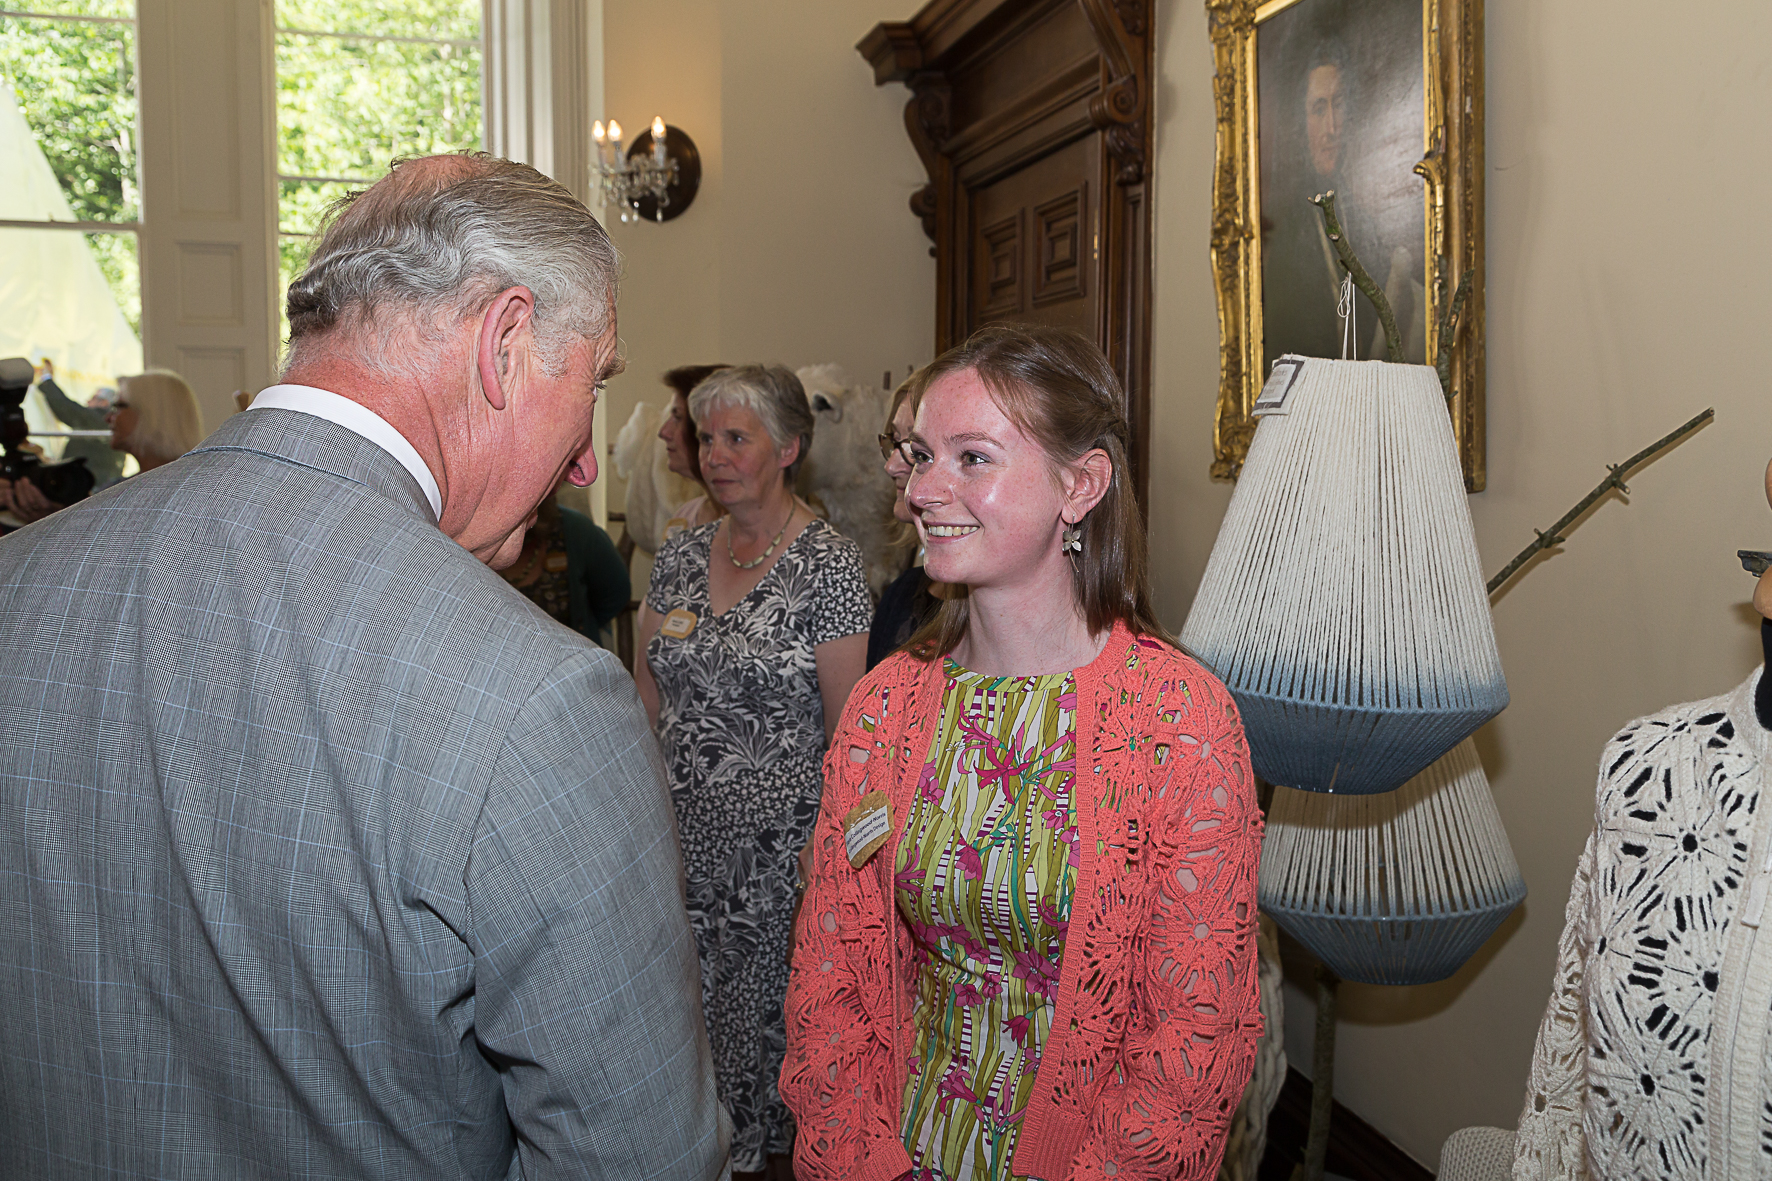 Wearing the new crochet bomber jacket, with HRH Prince charles